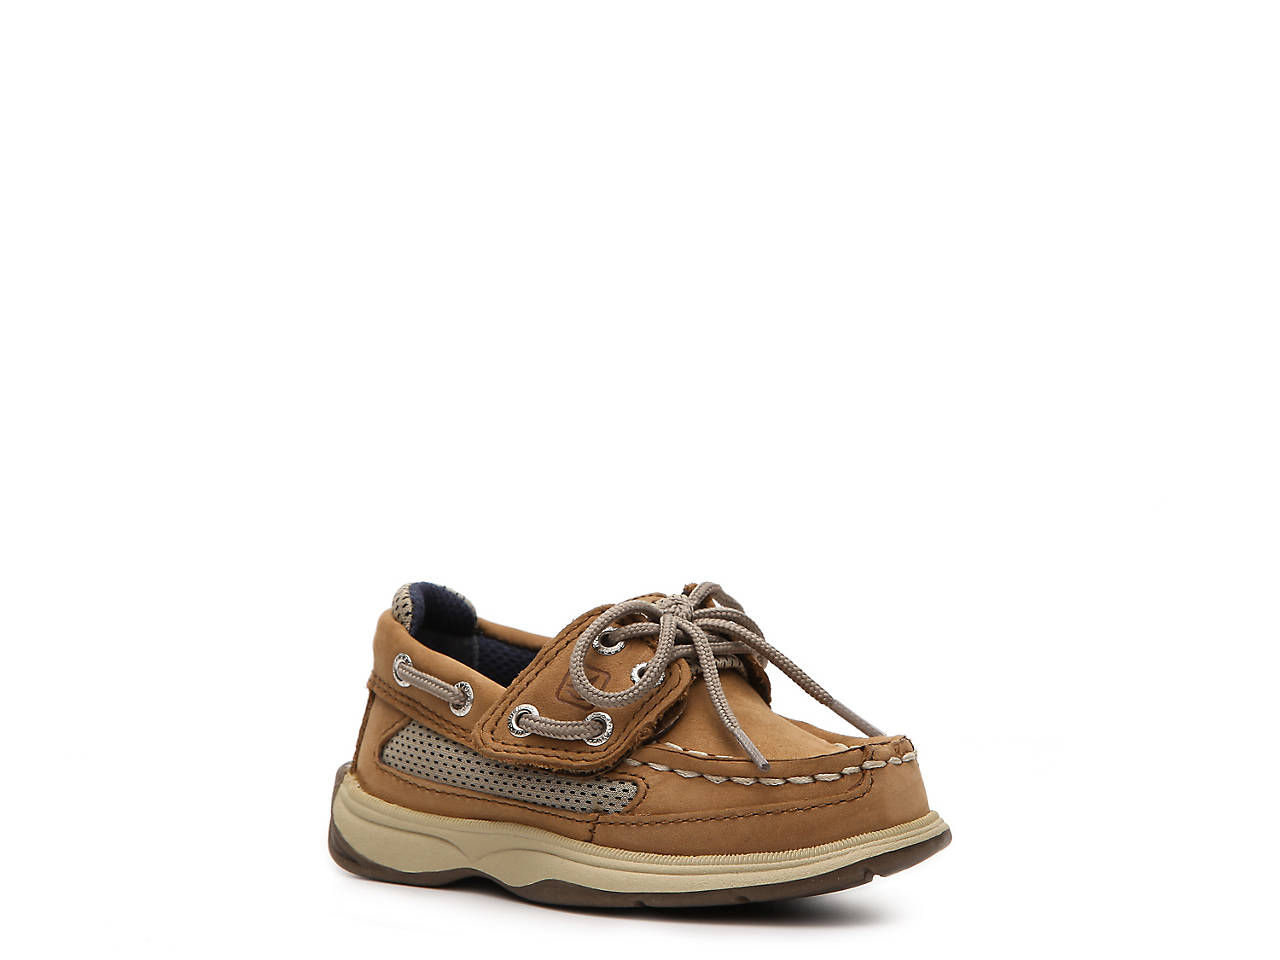 a79927893b82 Sperry Top-Sider Lanyard Toddler Boat Shoe Kids Shoes | DSW